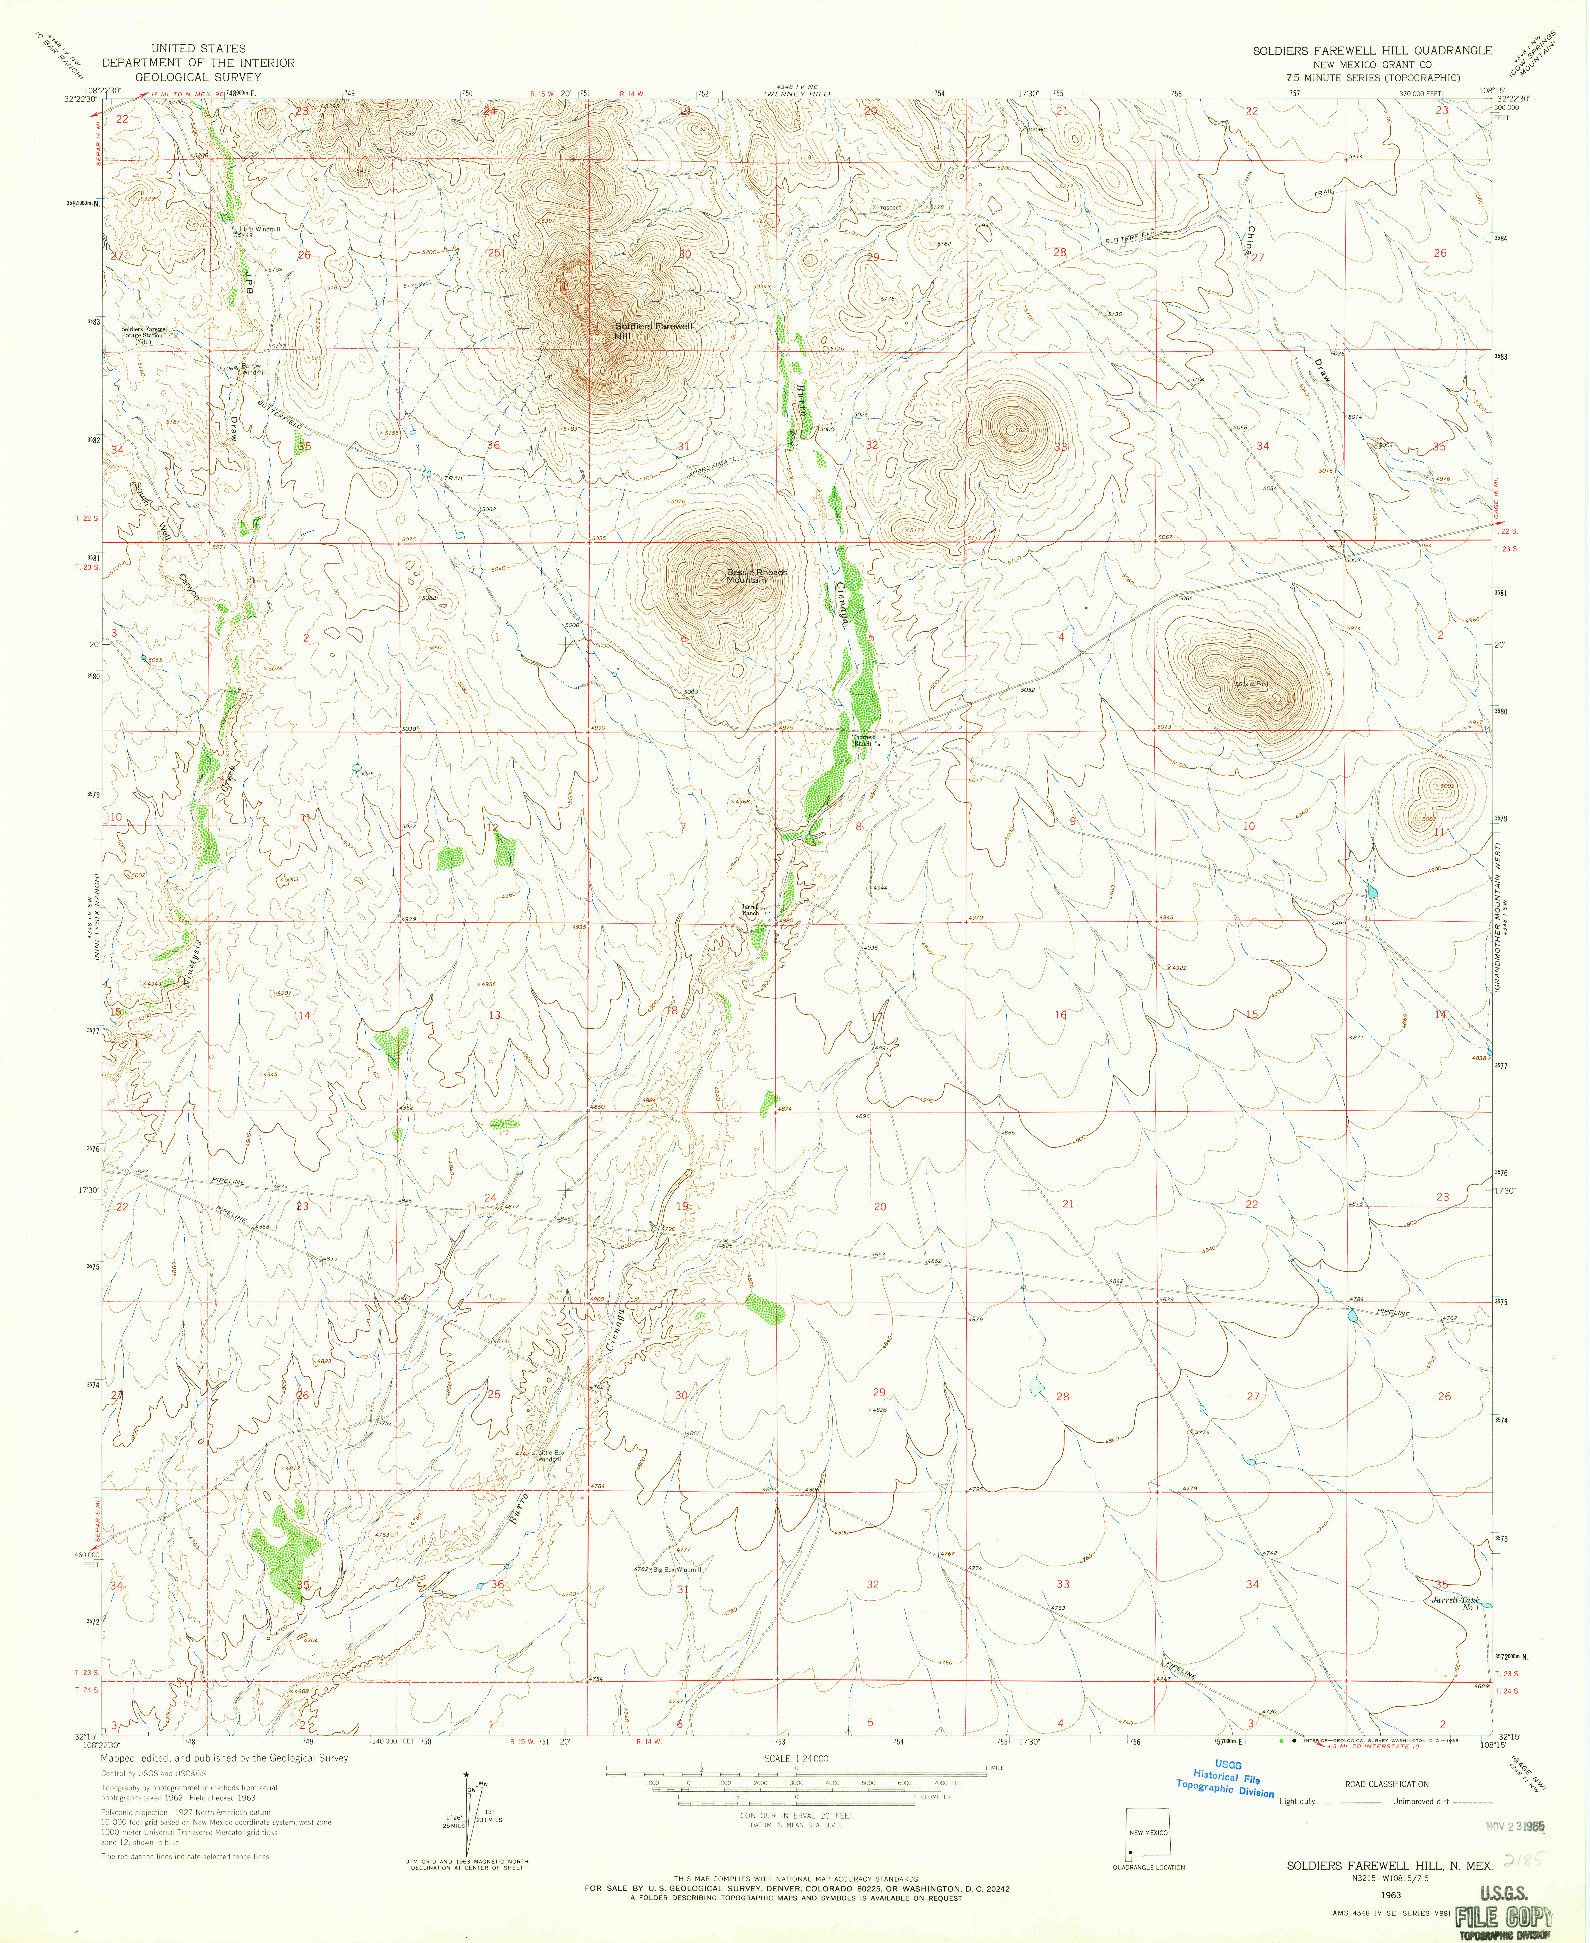 USGS 1:24000-SCALE QUADRANGLE FOR SOLDIERS FAREWELL HILL, NM 1963